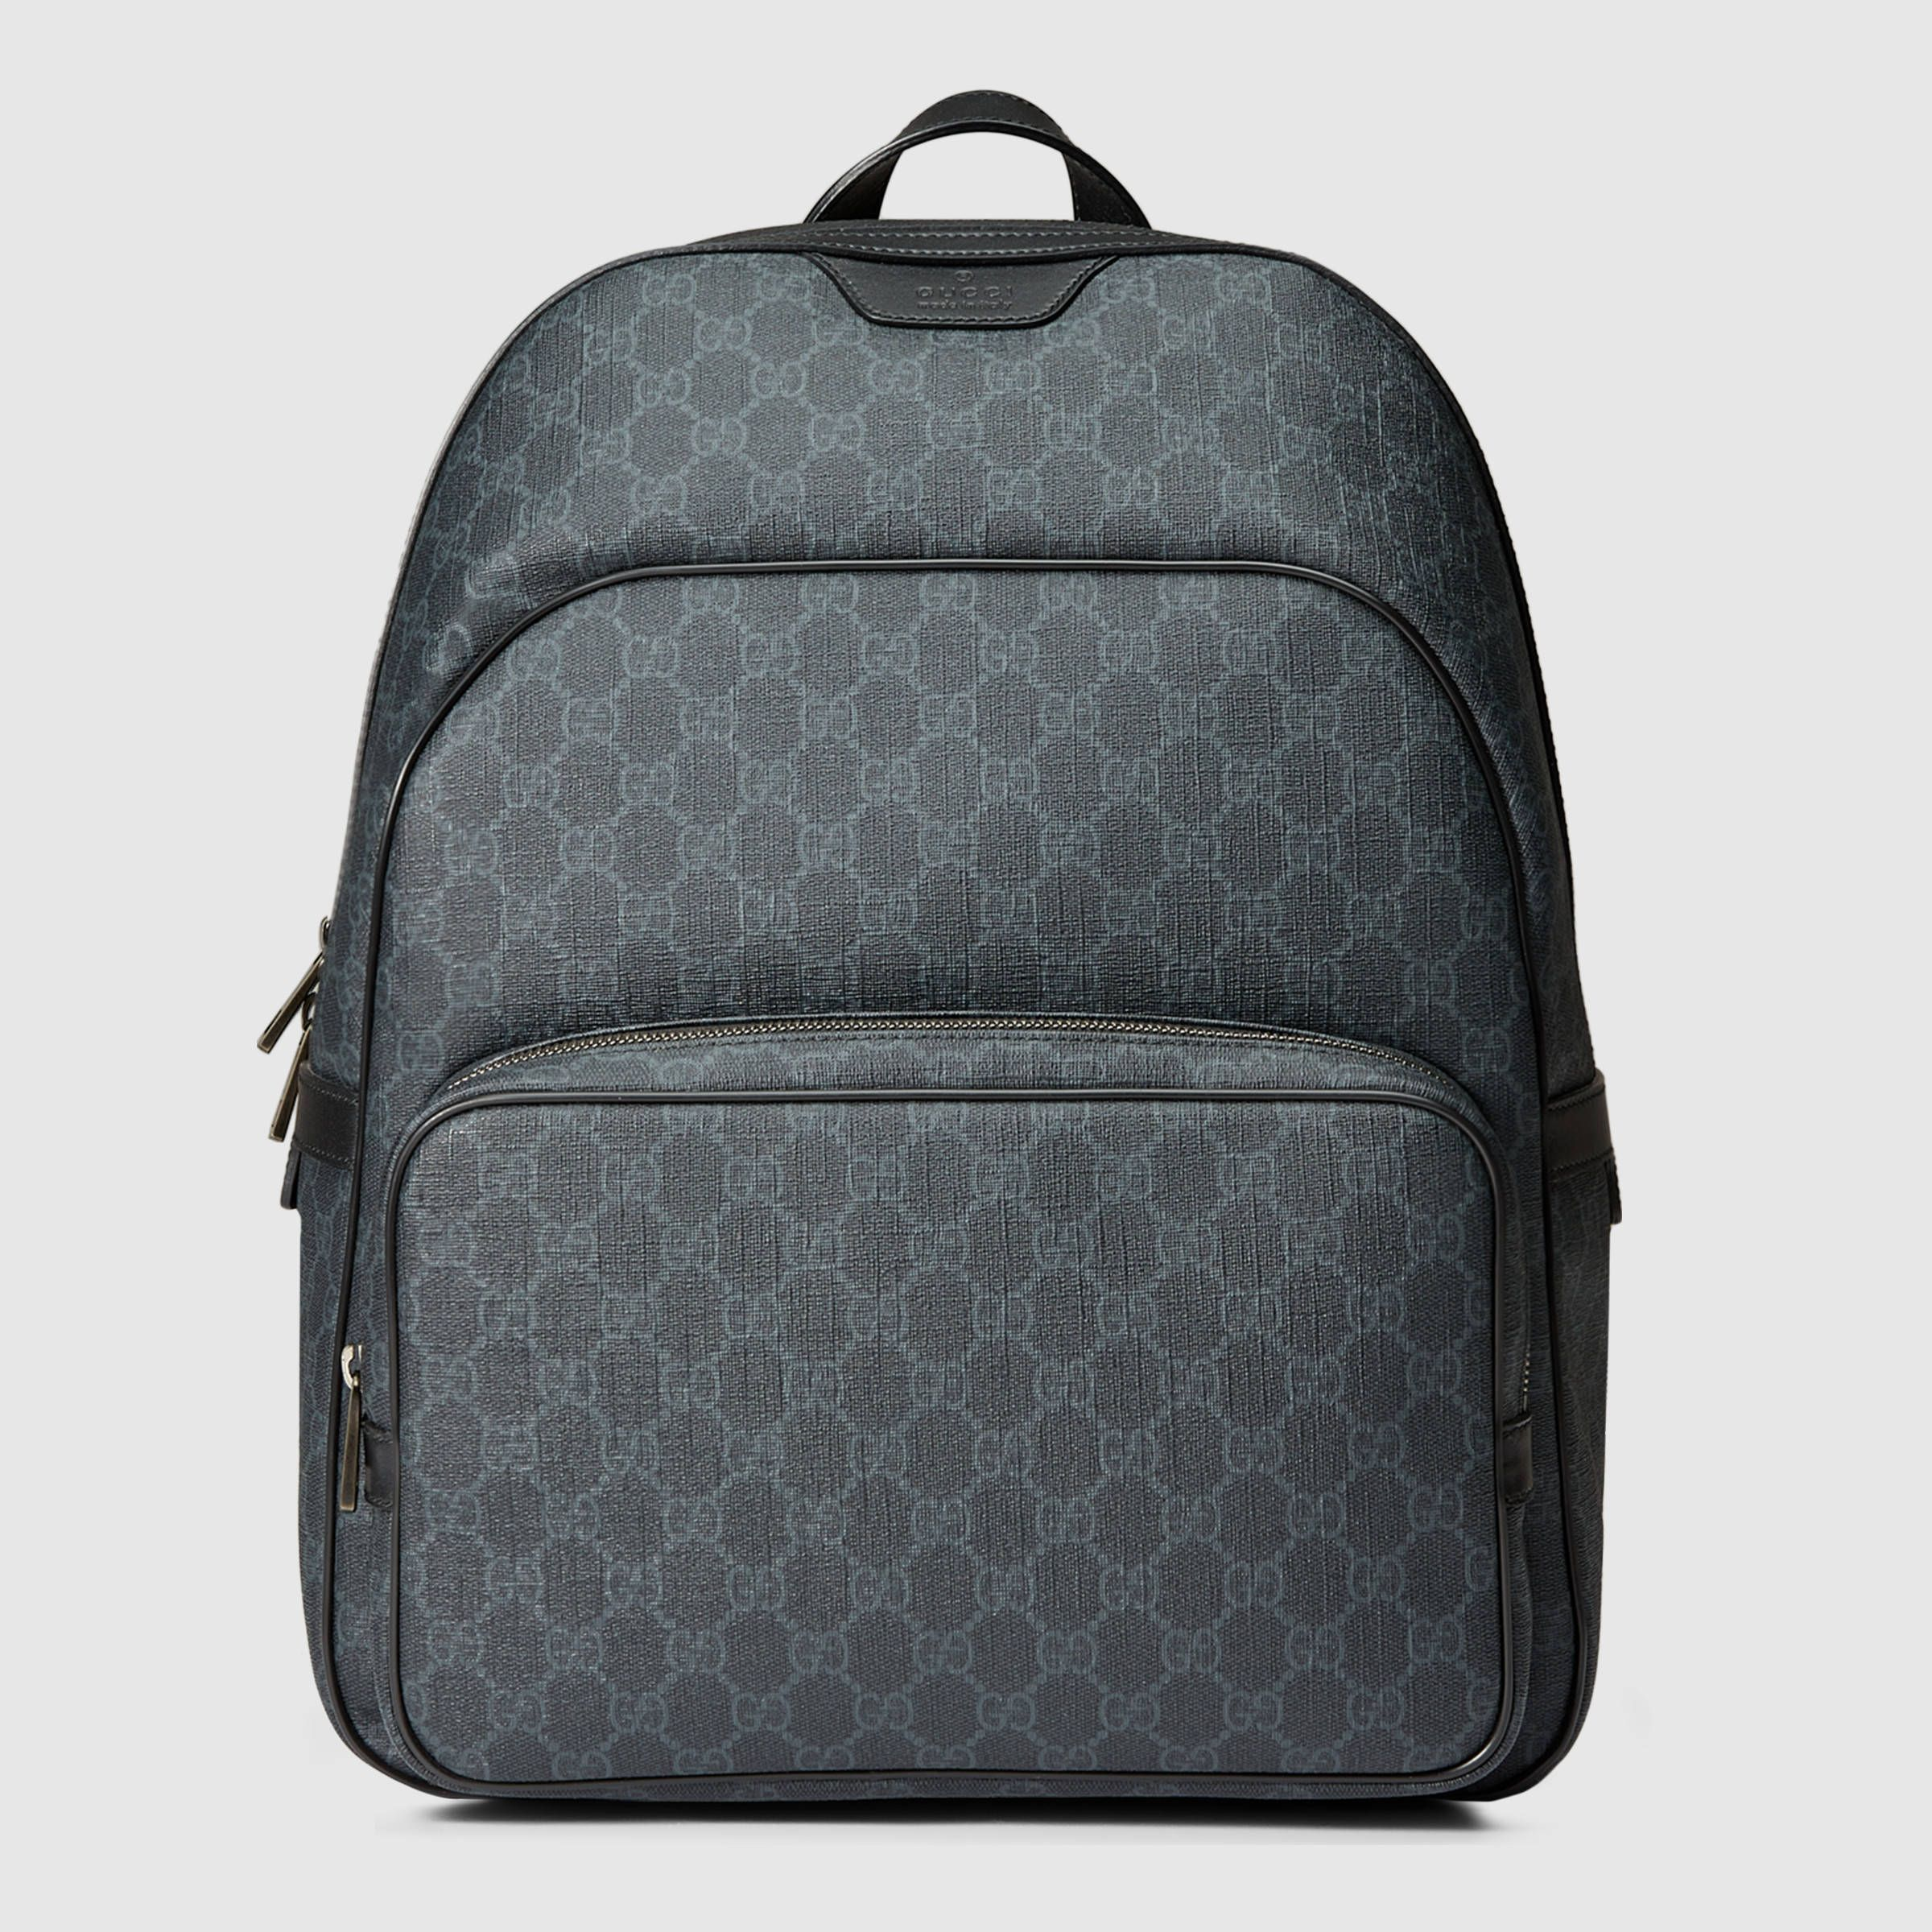 Gucci GG Supreme Backpack  5b02e7516f76e